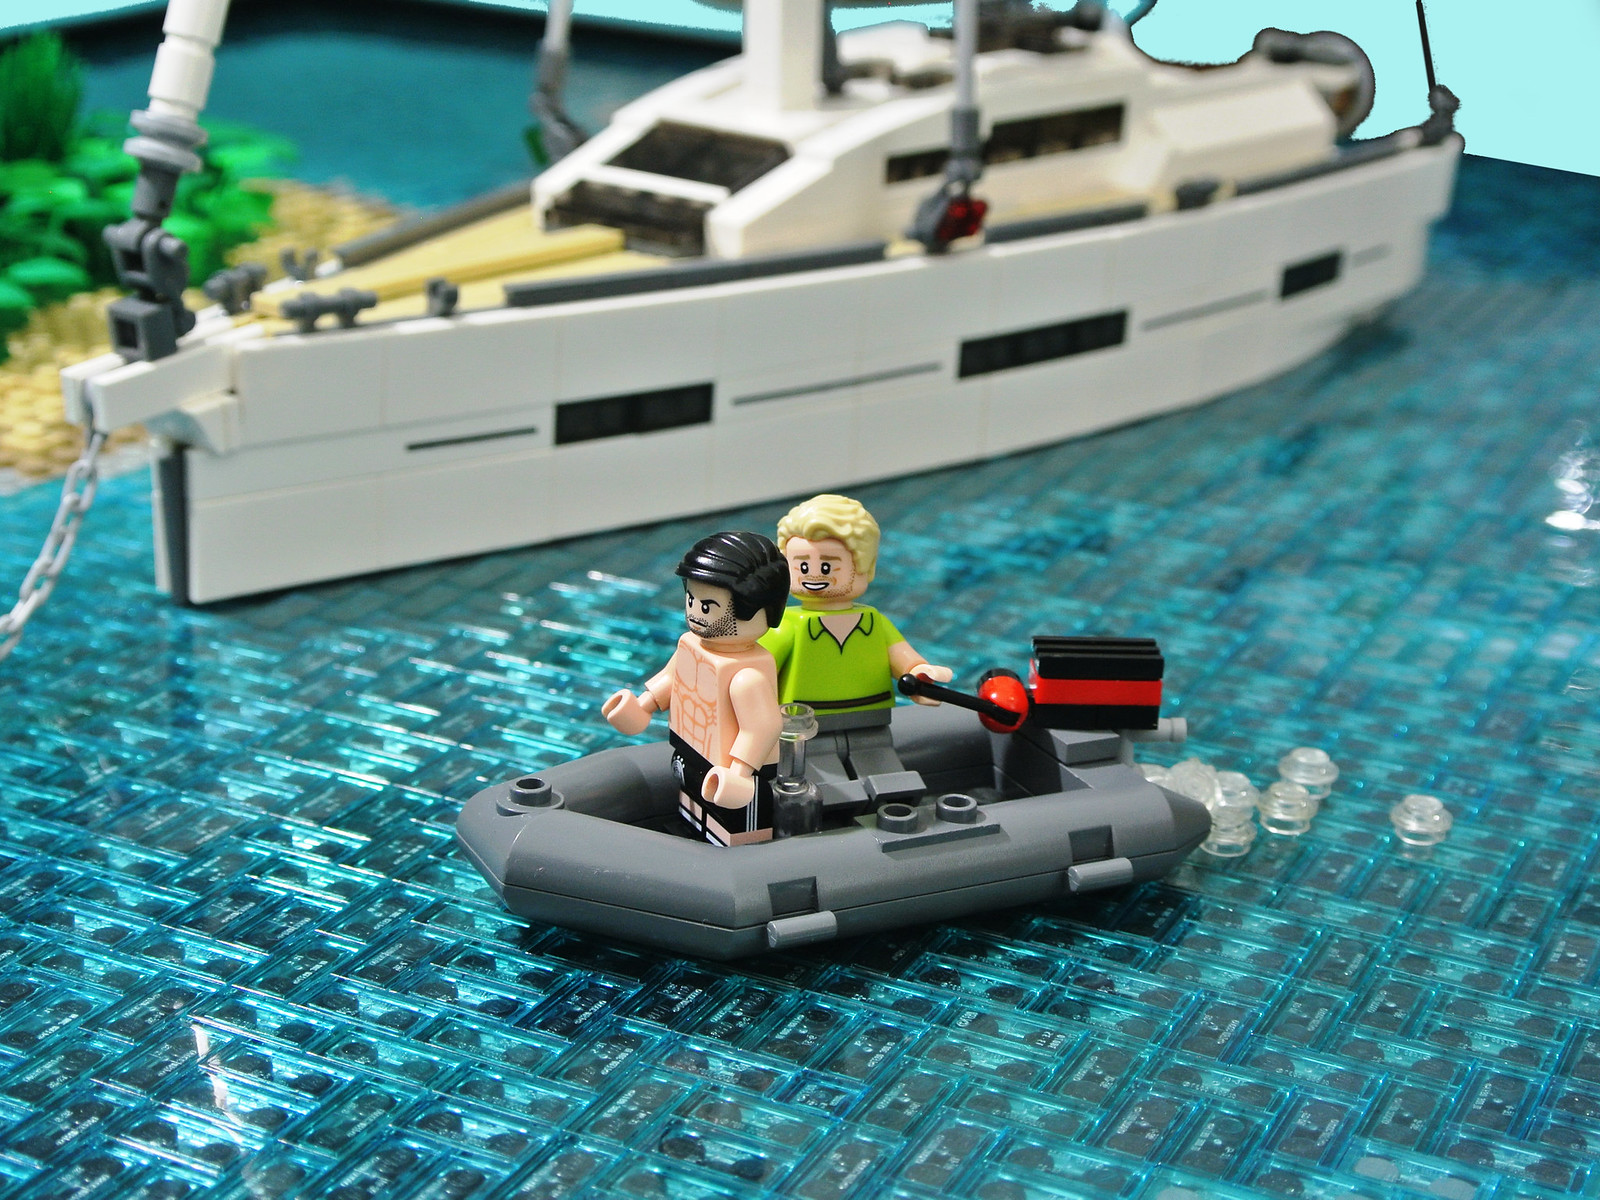 yacht lego creation